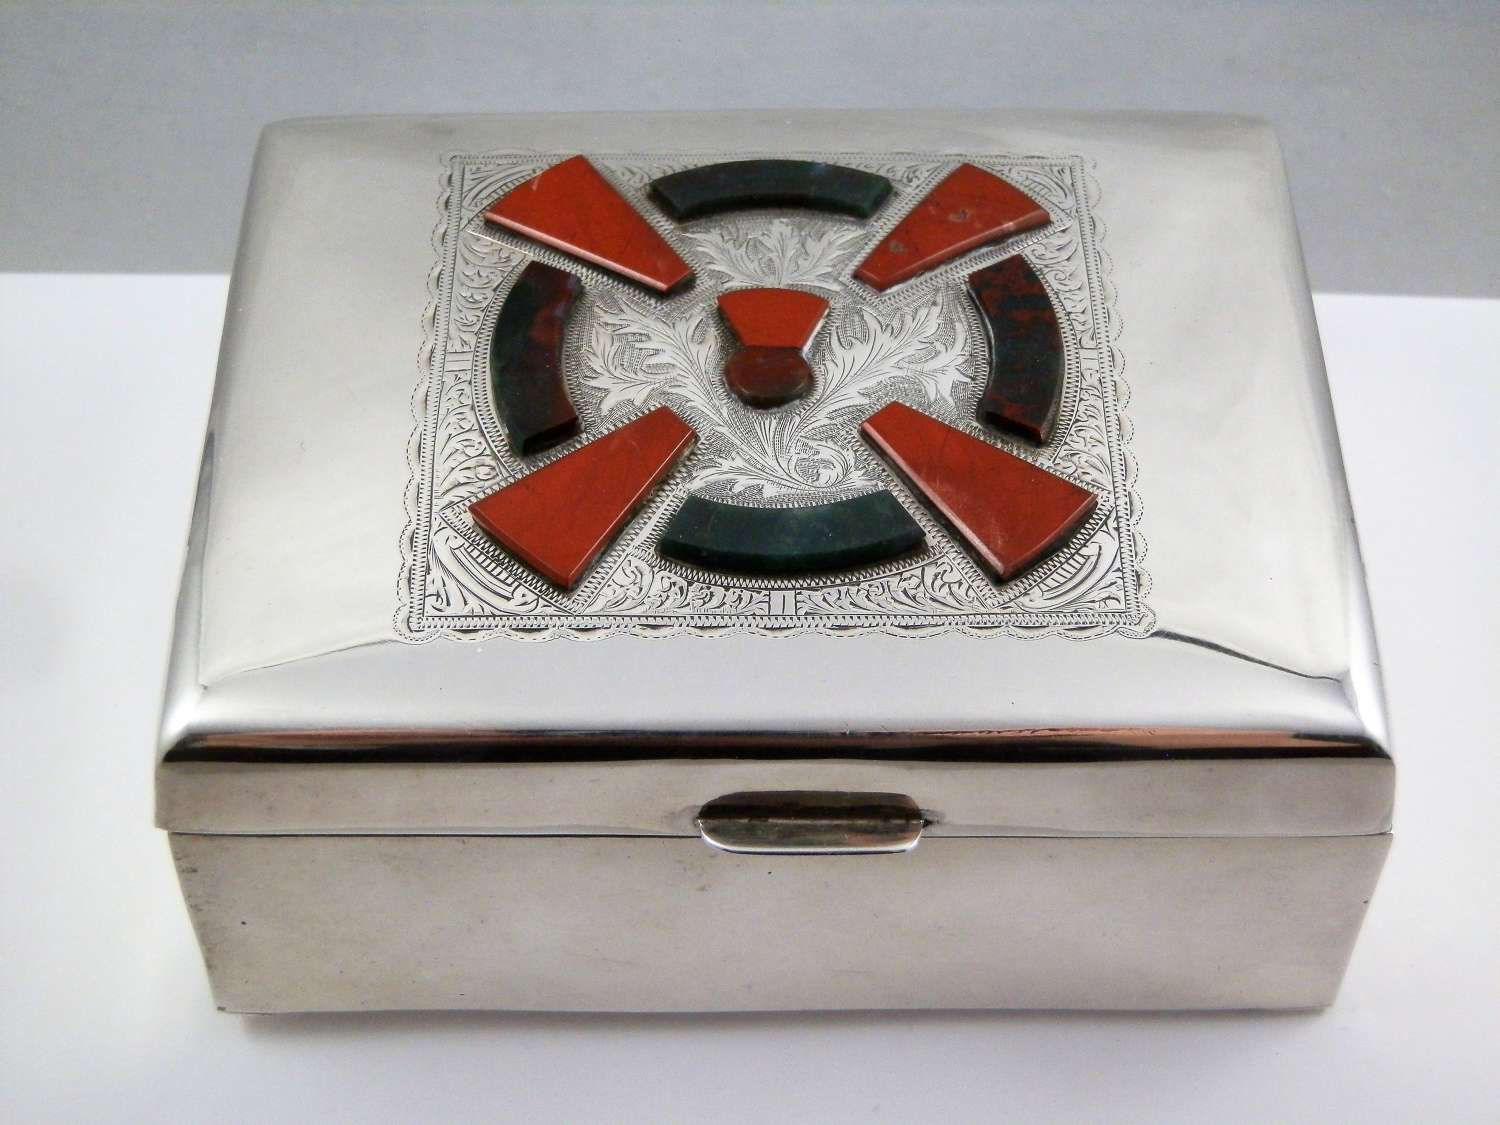 Chester silver trinket box with agates, 1923